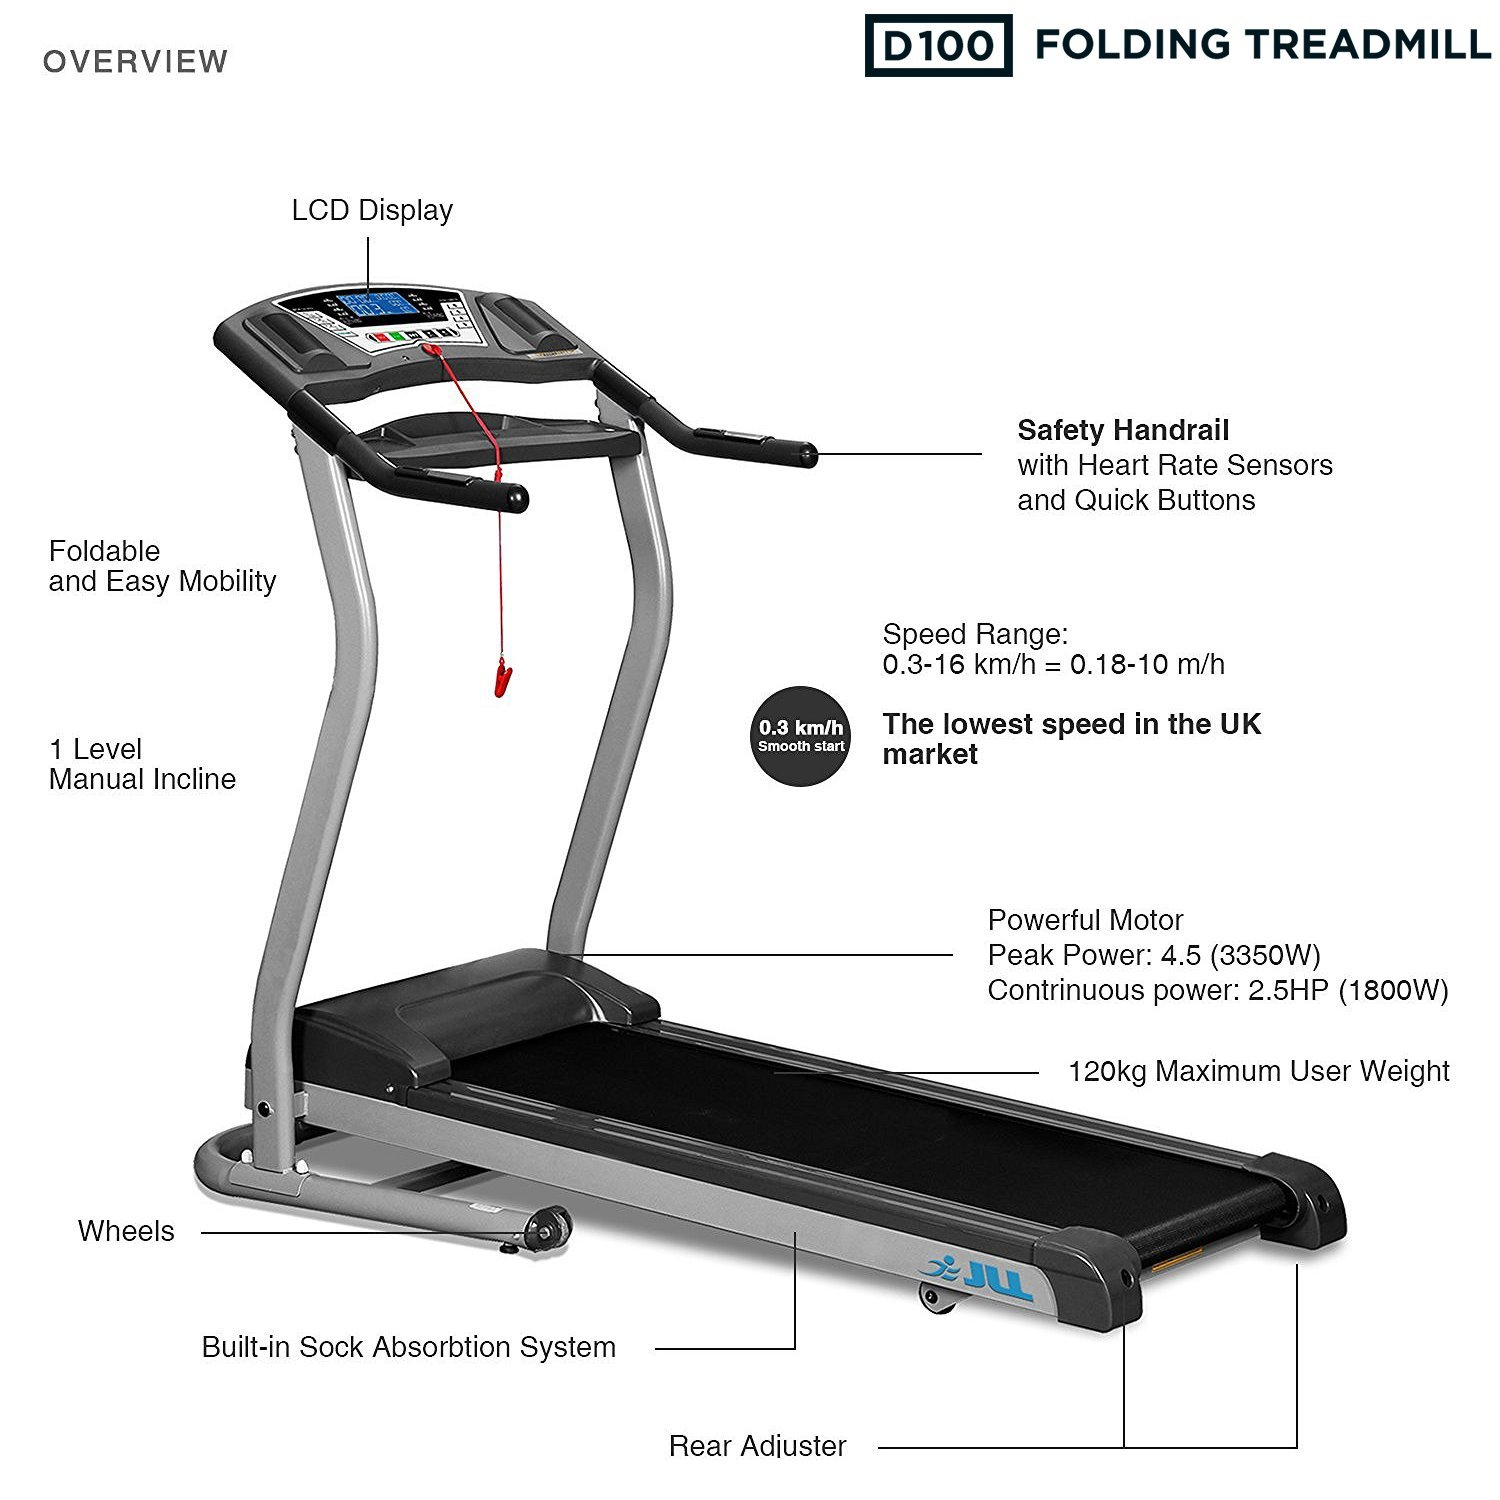 Smooth treadmill incline motor wiring diagram trusted wiring diagram jll d100 treadmill with digital motor technology 4 5hp motor and refrigerator run capacitor wiring diagram smooth treadmill incline motor wiring diagram swarovskicordoba Gallery